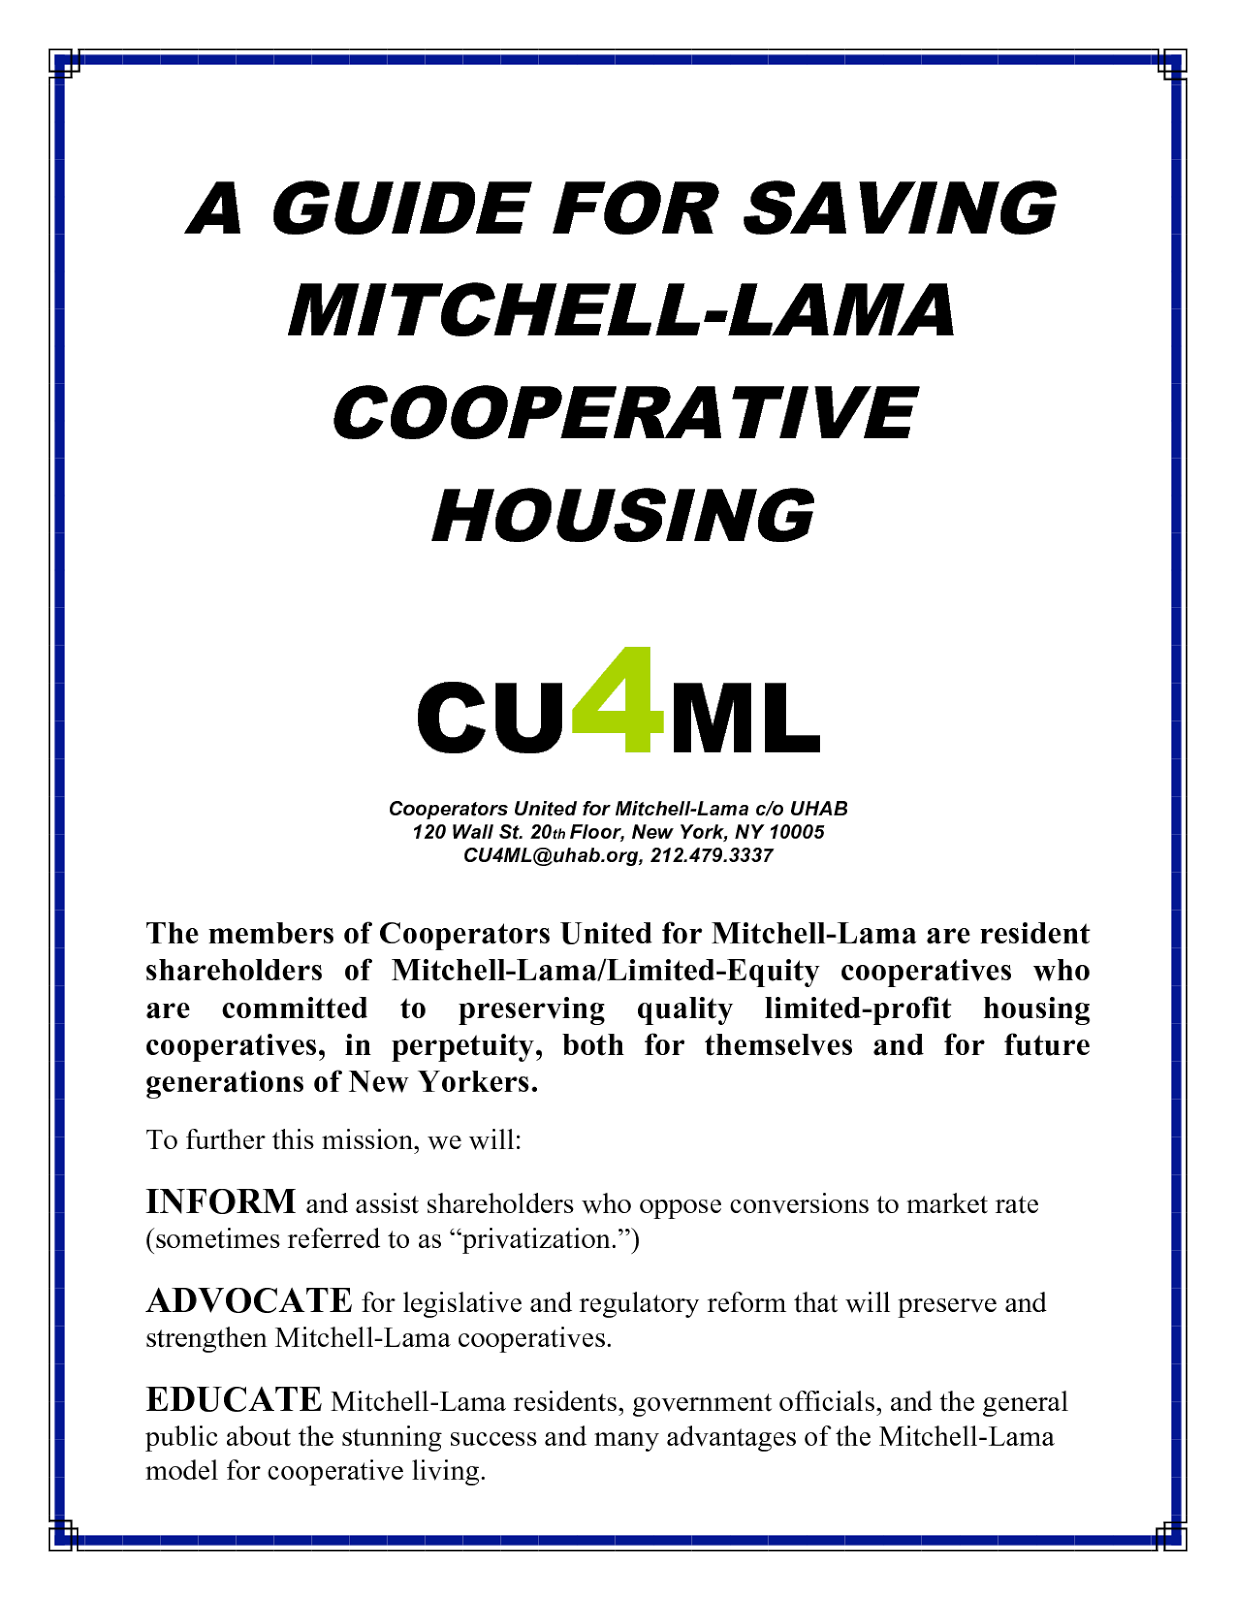 Save Affordable Housing: Mitchell-Lama